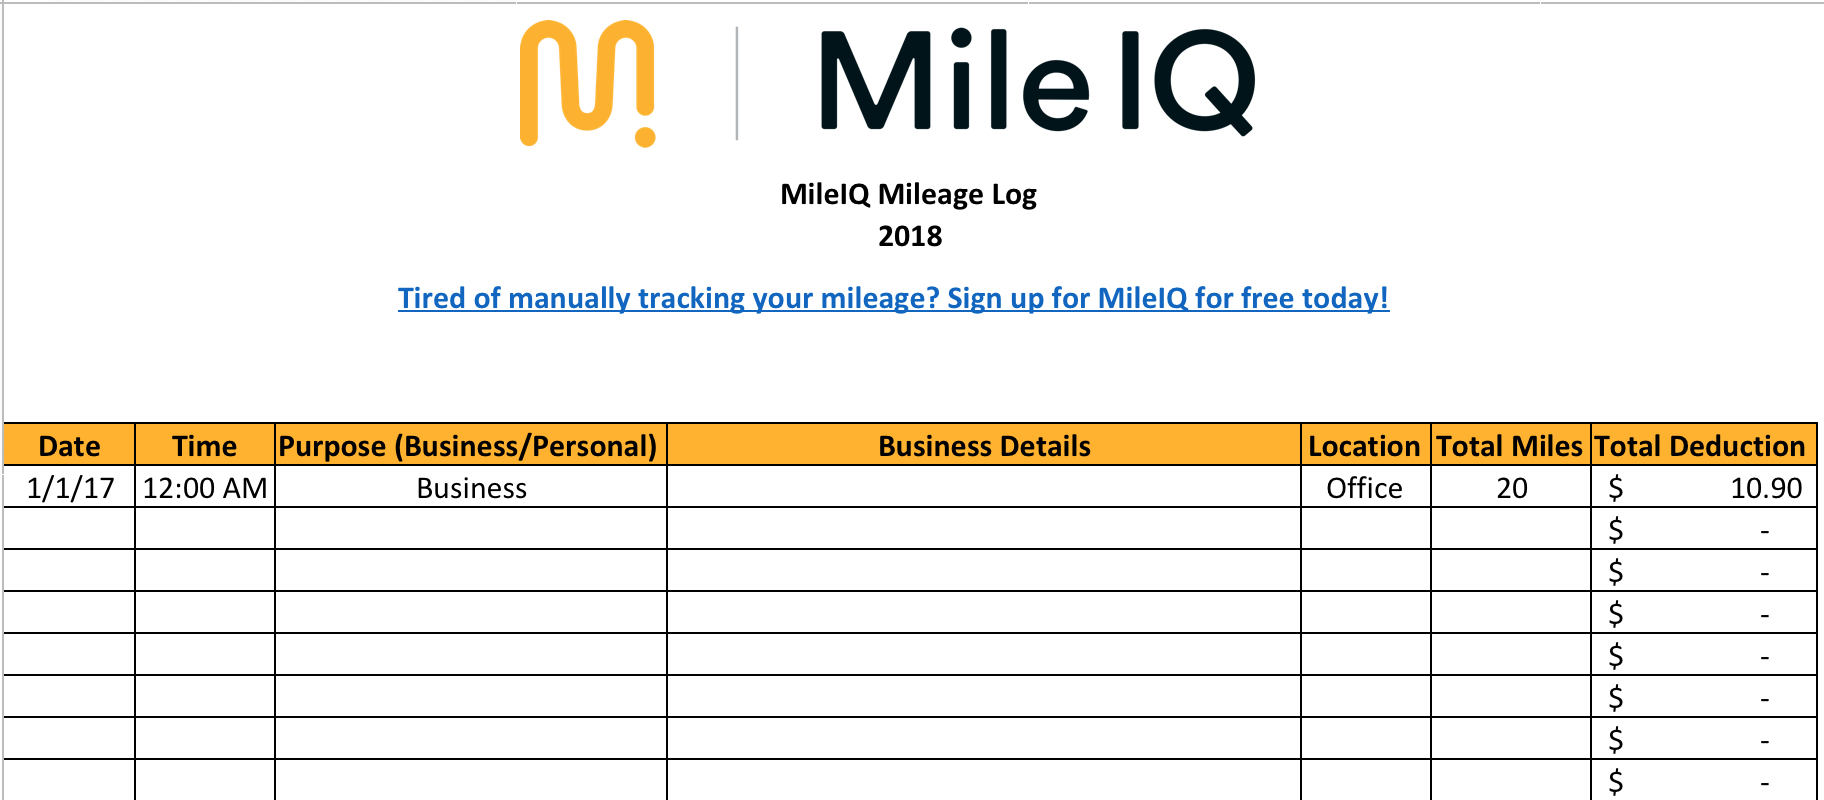 Sweepstakes Tracking Spreadsheet Regarding Free Mileage Log Template For Excel  Track Your Miles